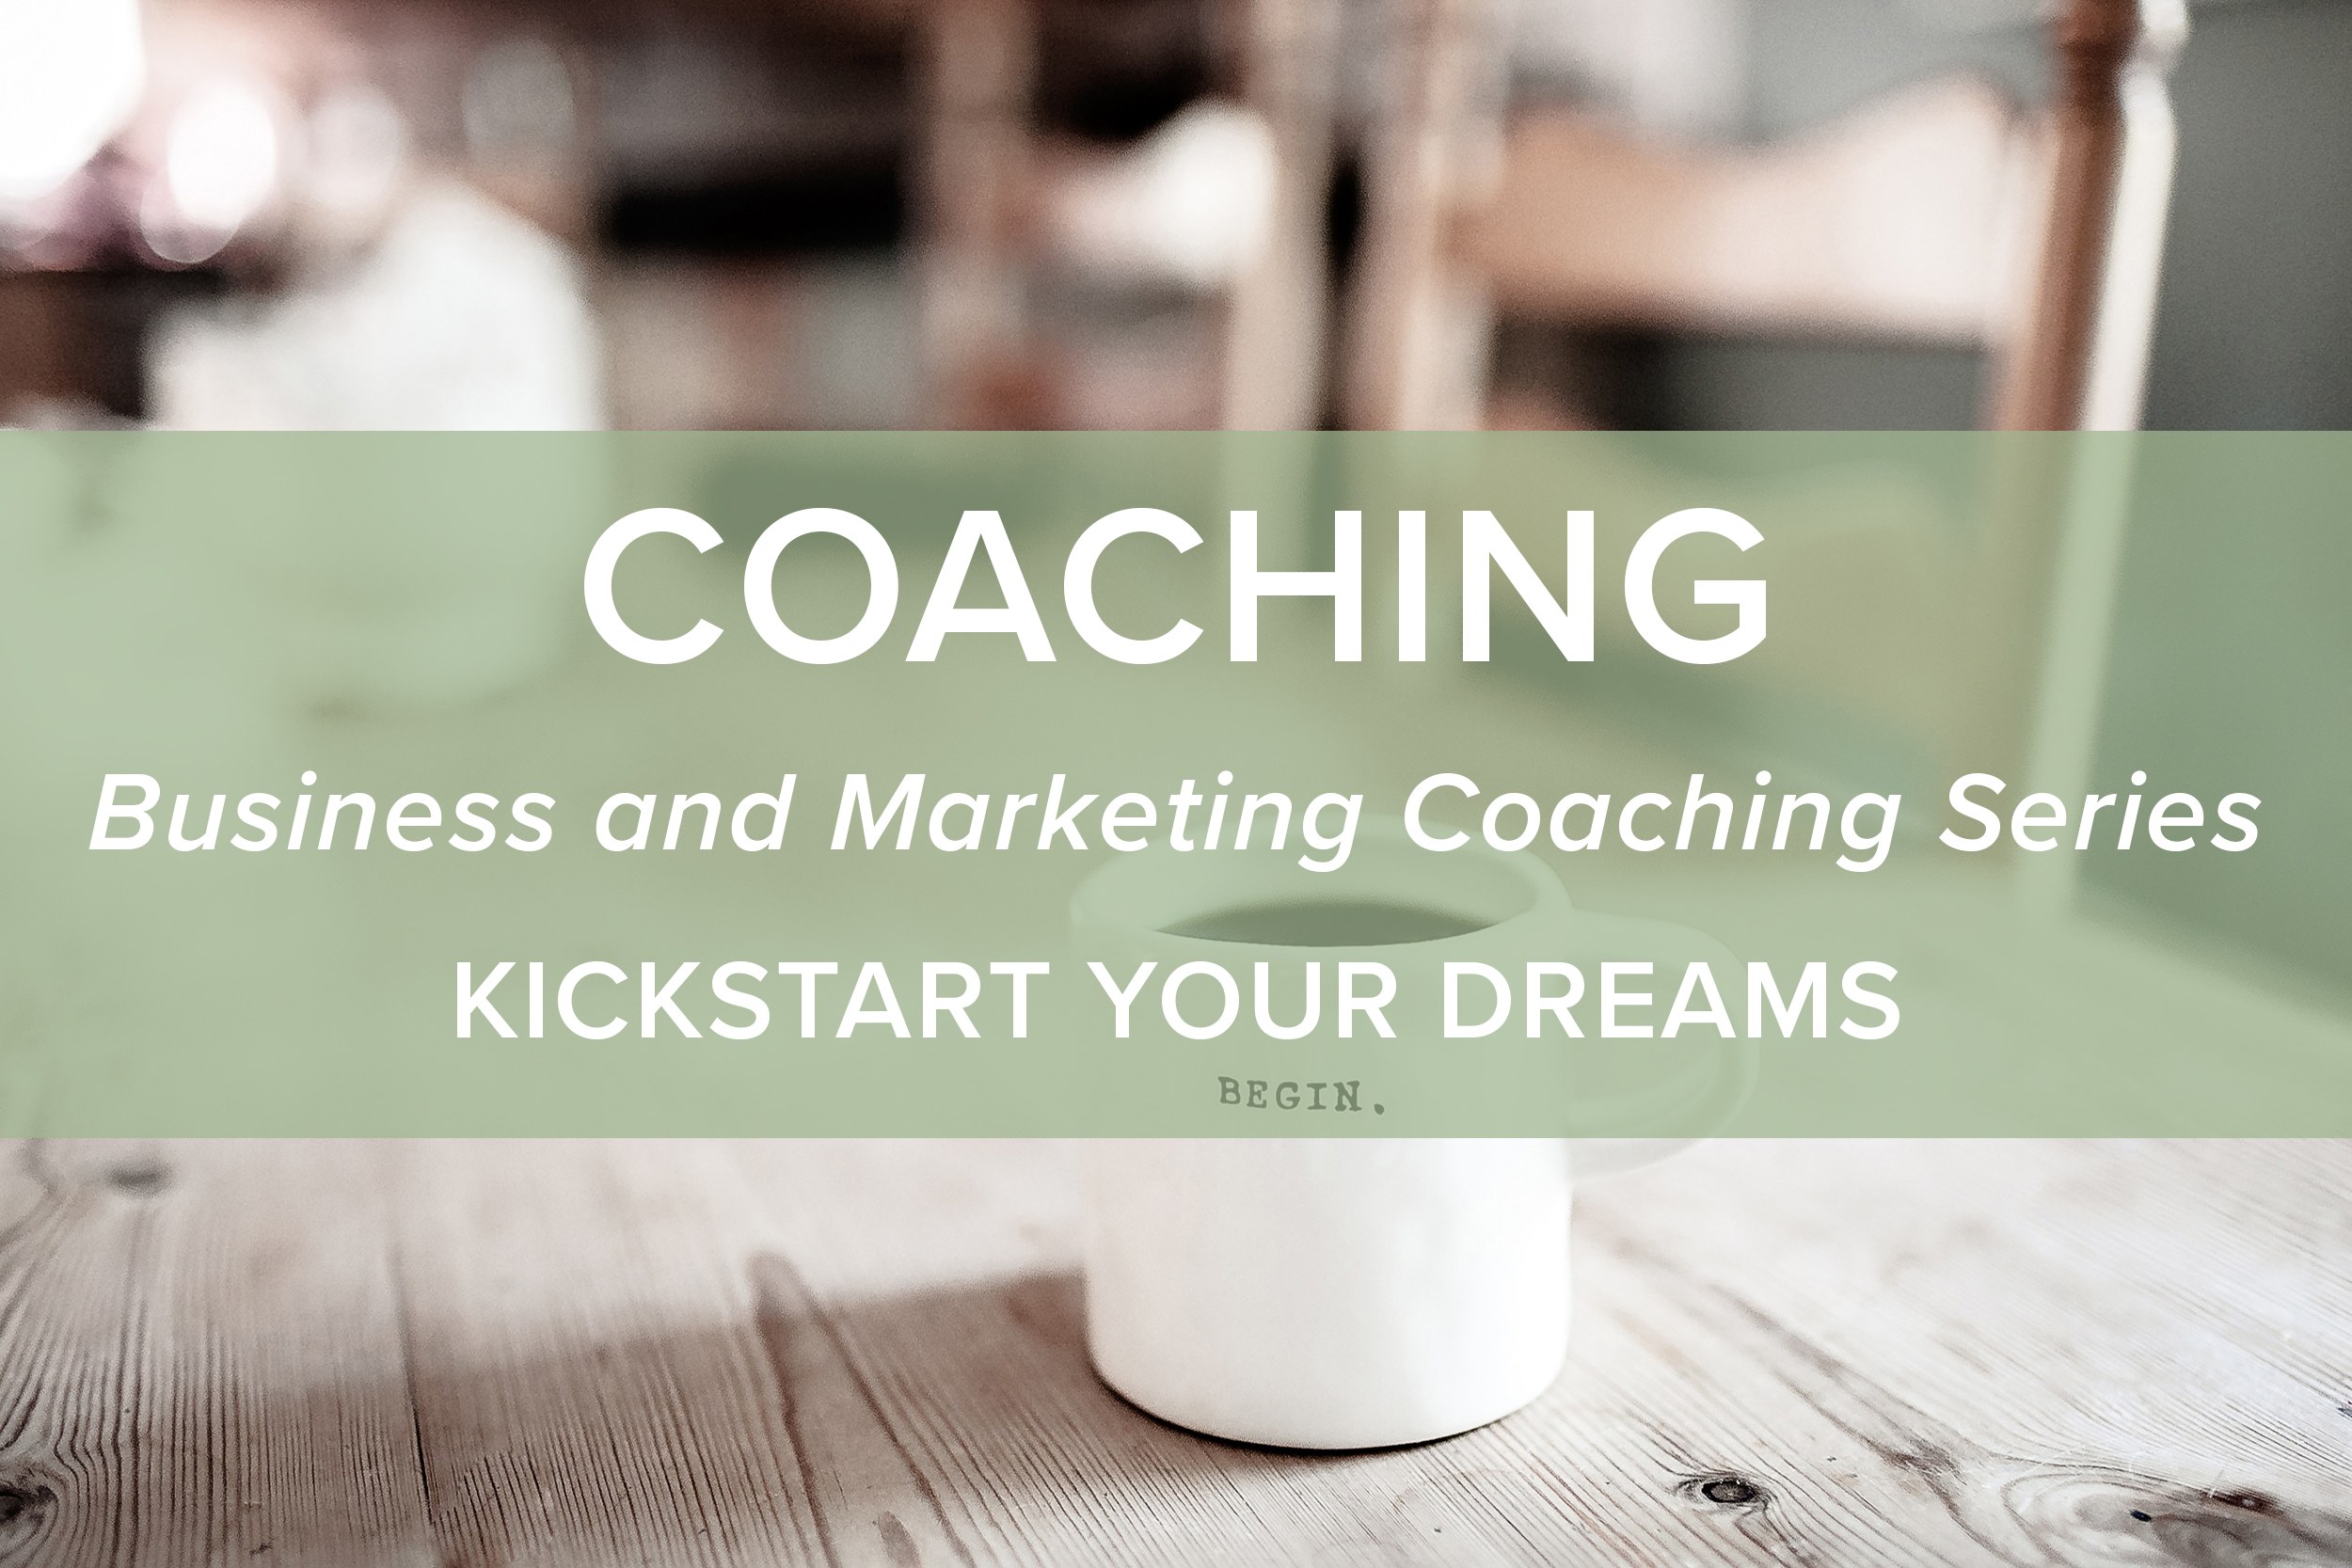 Business and Marketing Coaching with Laurie Nelson